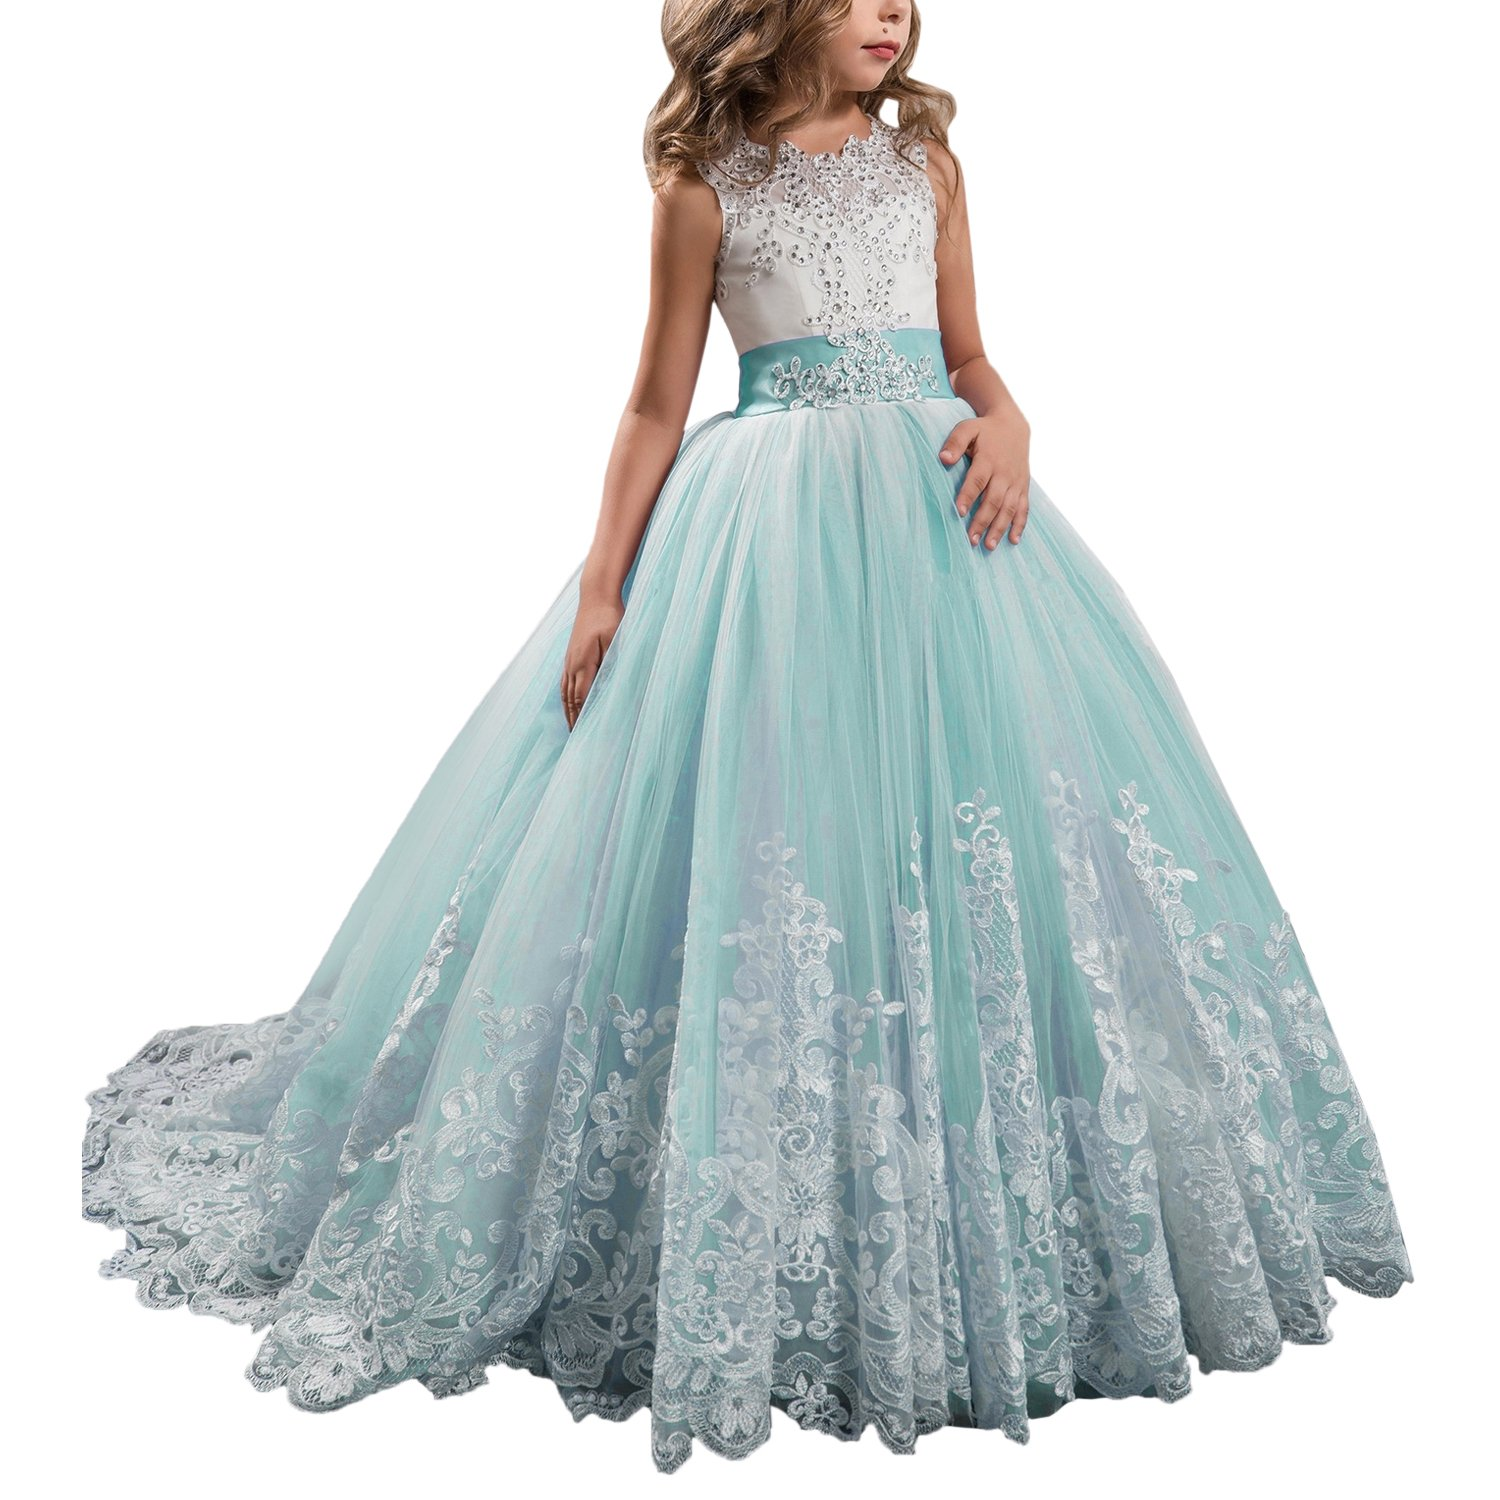 Princess Aqua Long Girls Pageant Dresses Kids Prom Puffy Tulle Ball Gown US 8